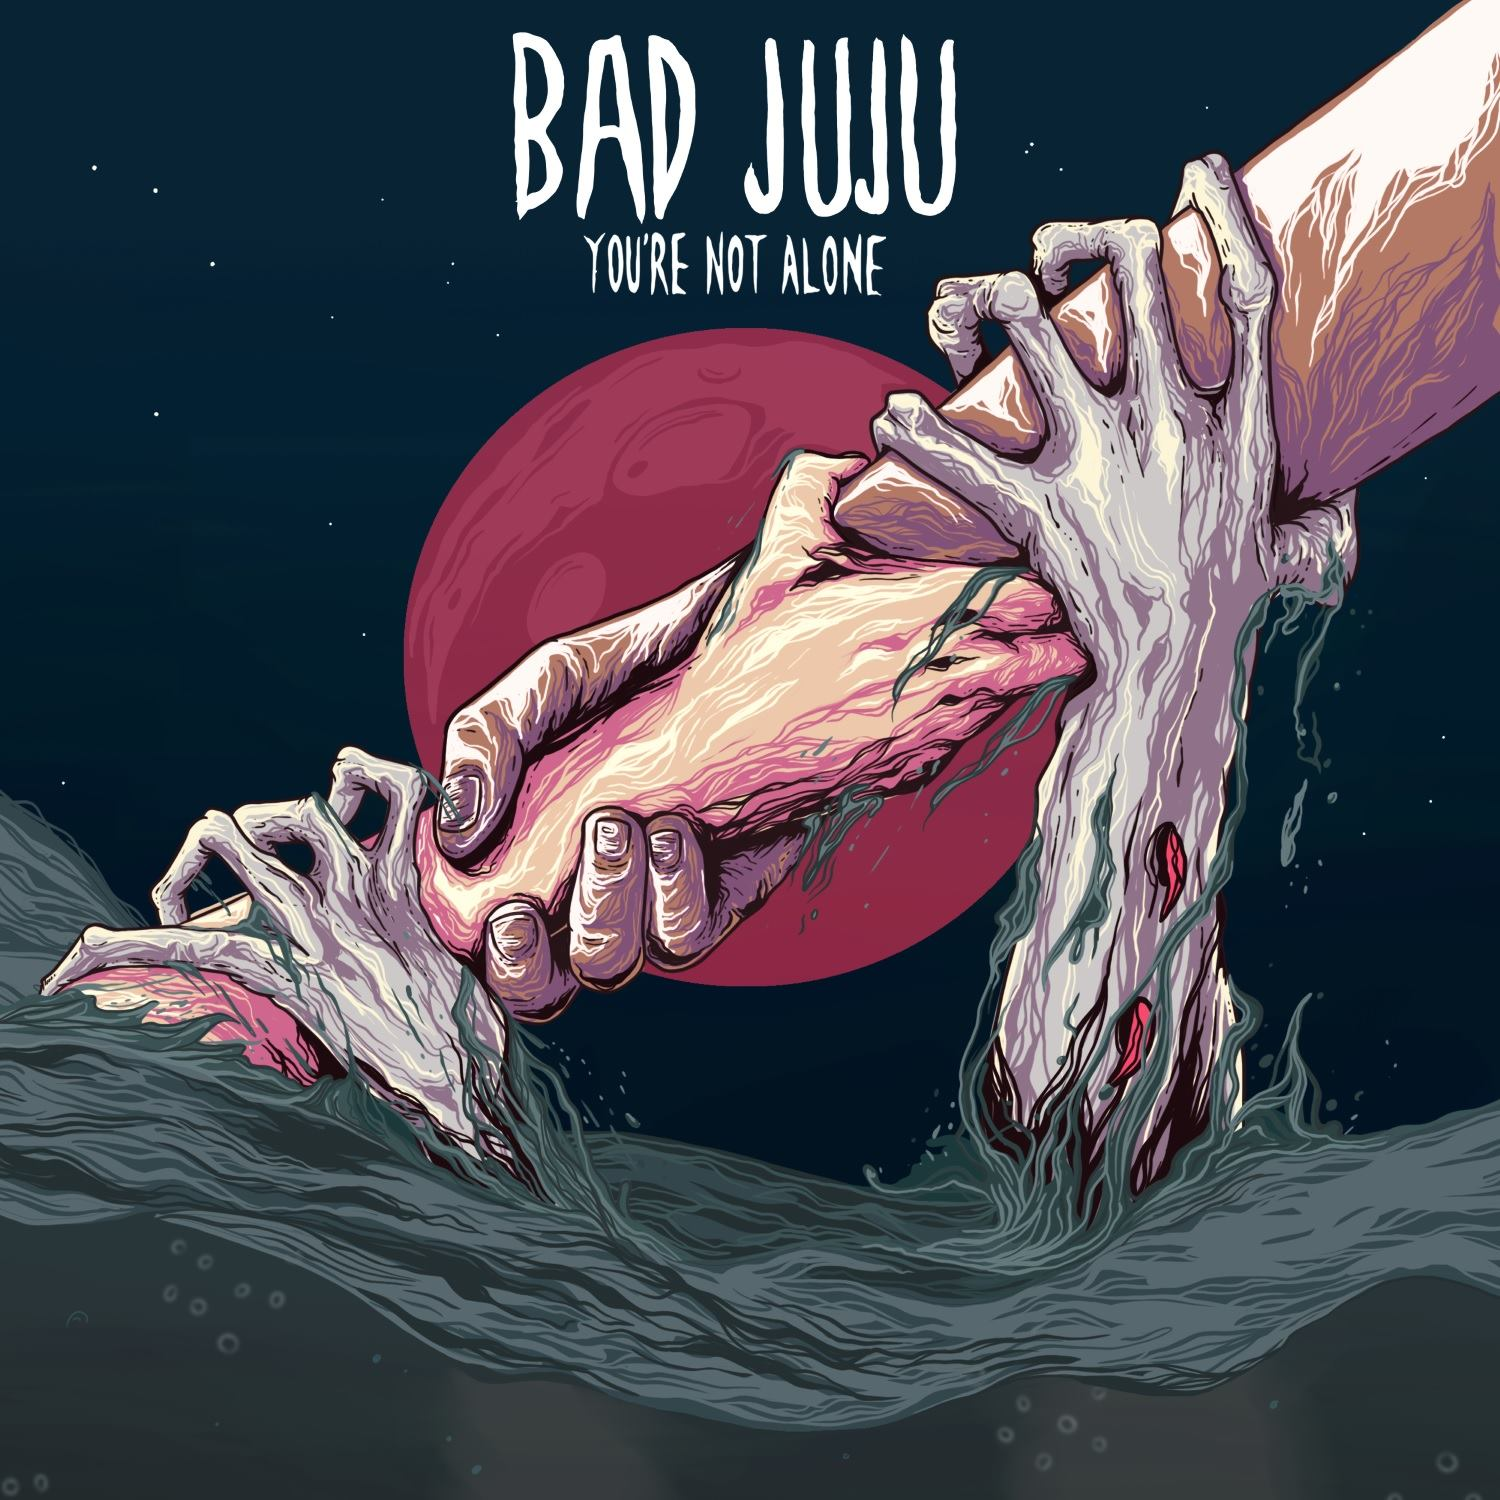 Bad Juju You're Not Alone artwork